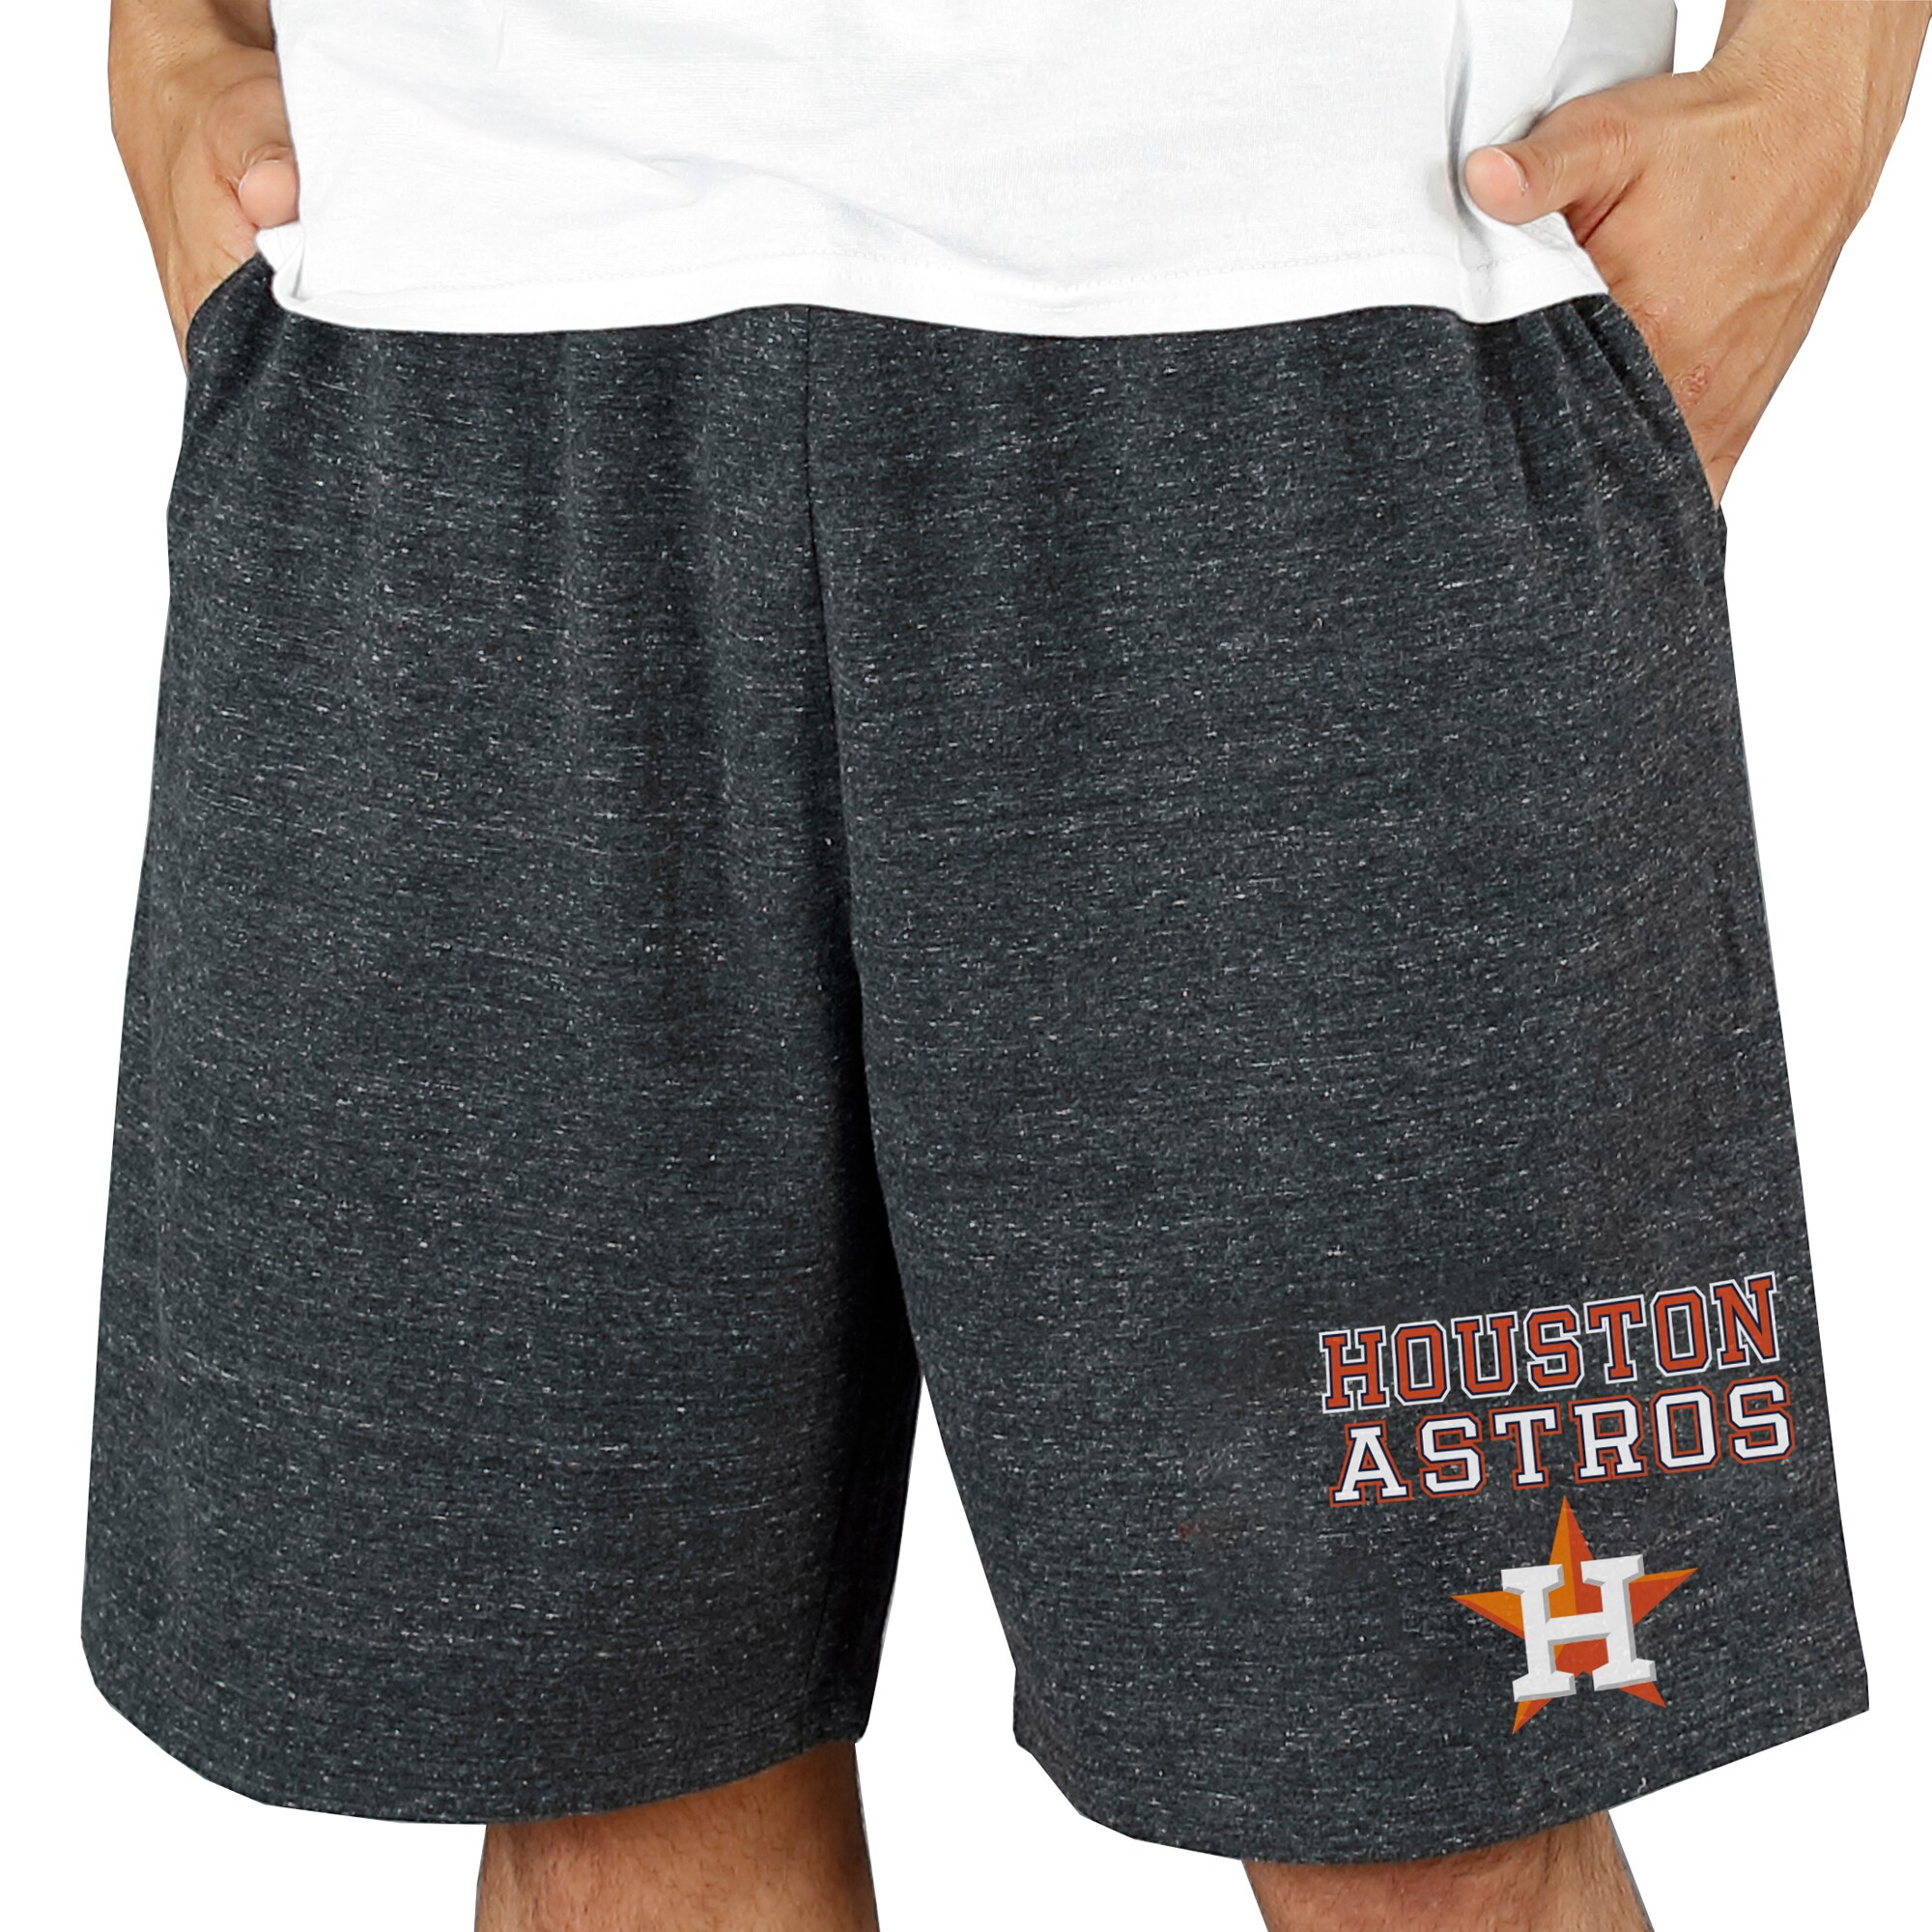 Houston Astros Concepts Sport Pitch Knit Jam Shorts - Charcoal